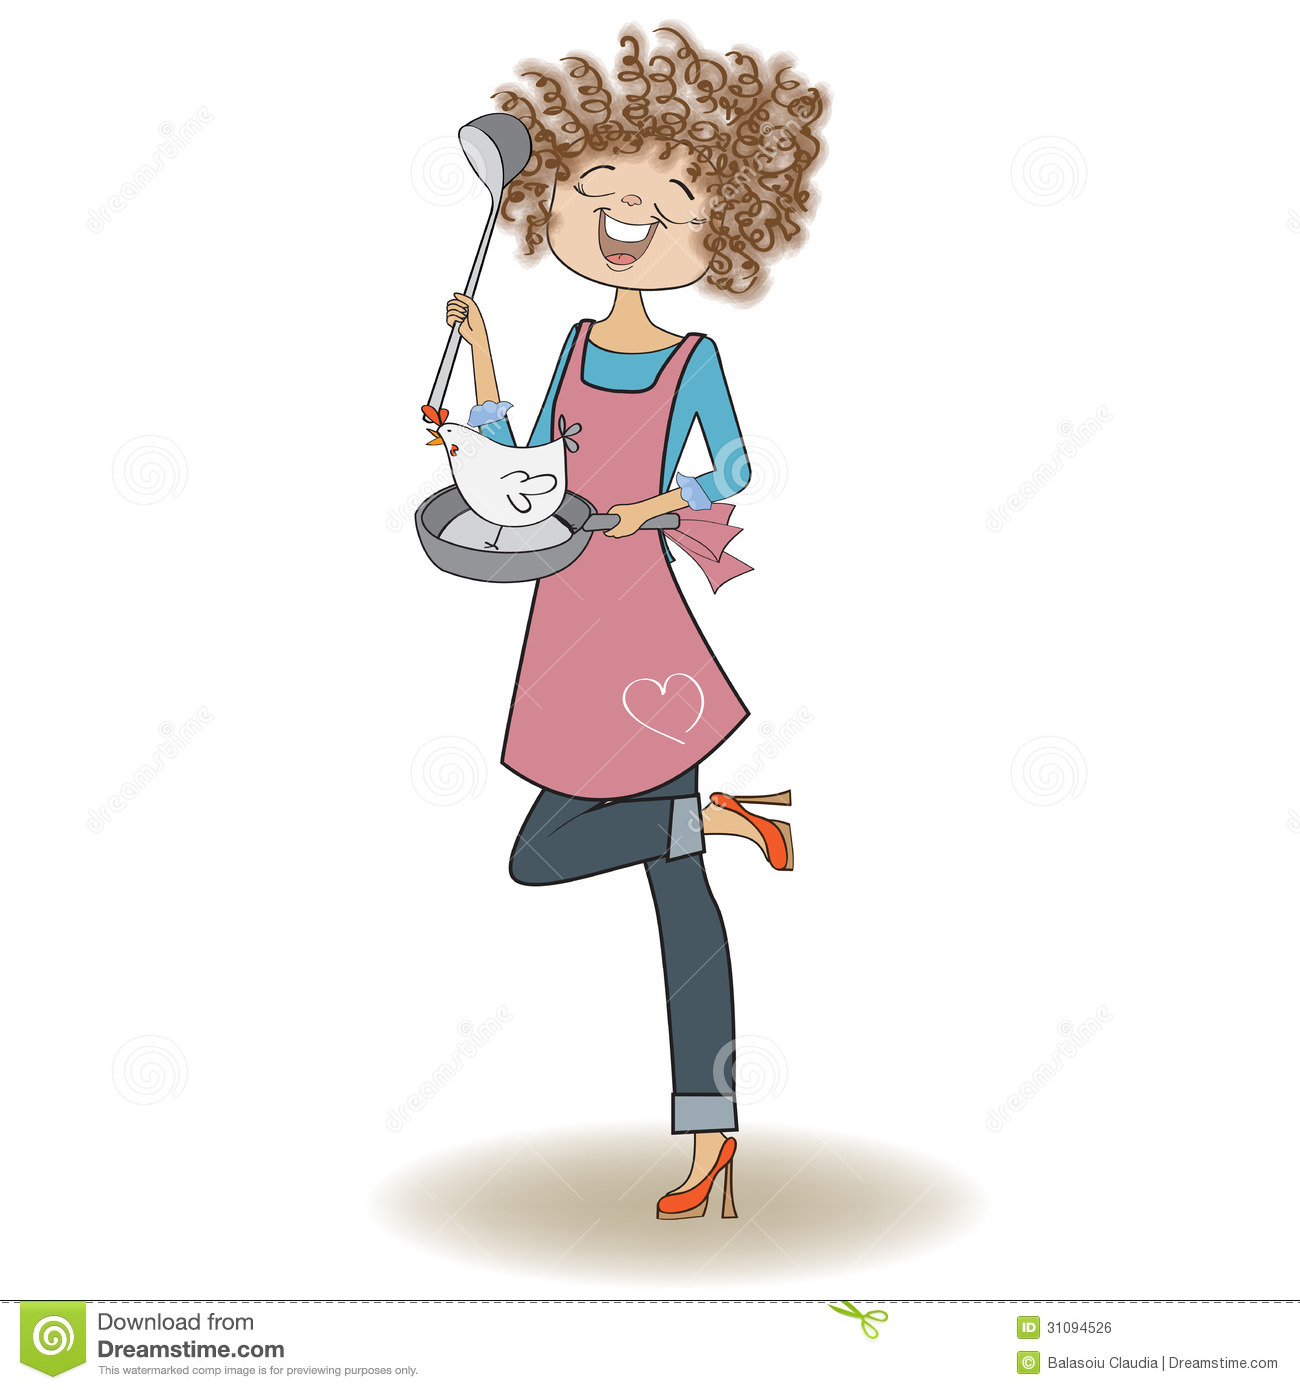 Woman Cooking Royalty Free Stock Image - Image: 31094526